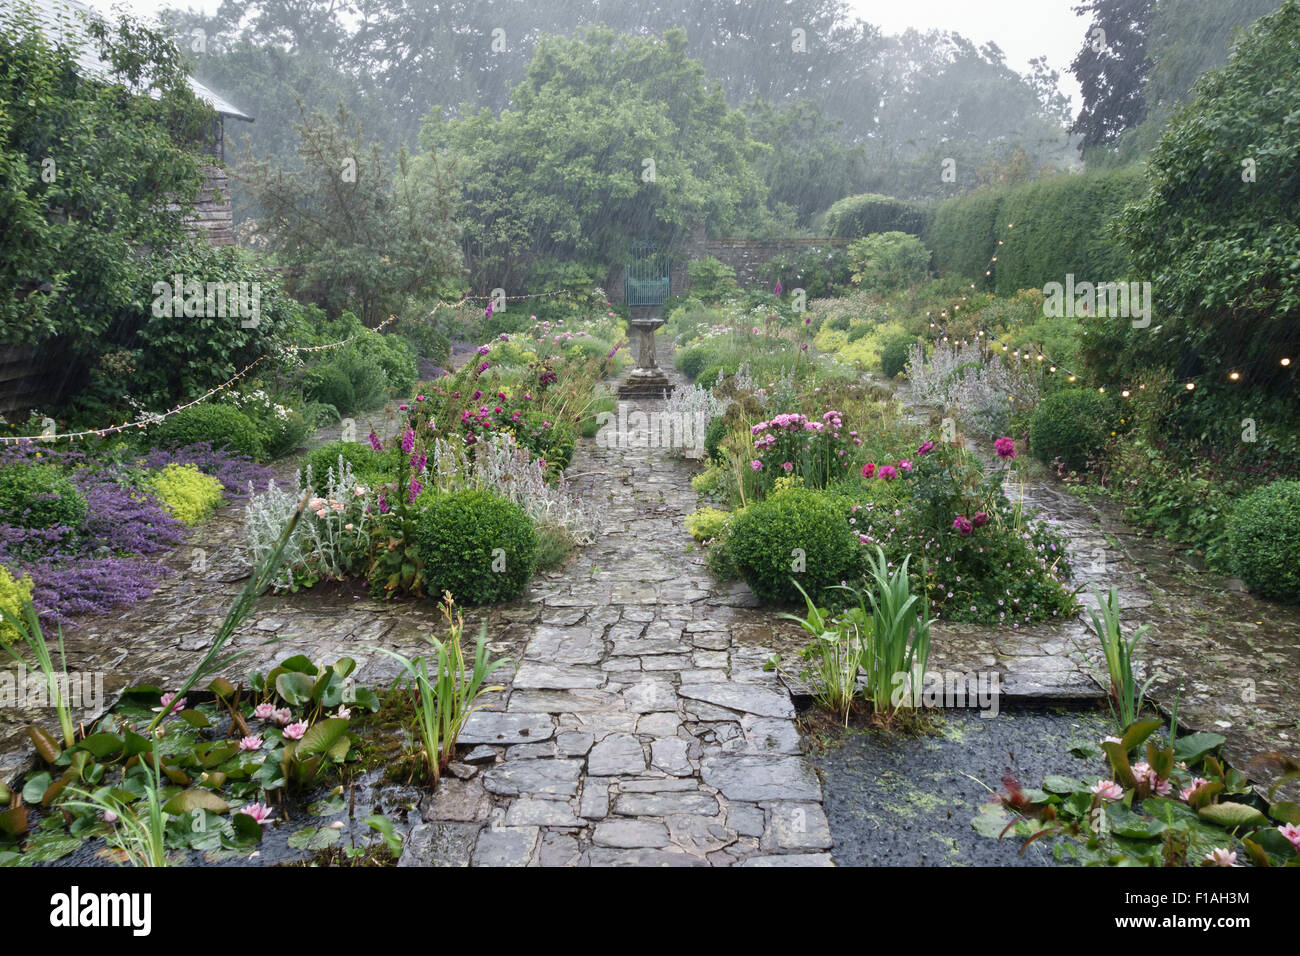 Wales, UK. A garden is drenched by heavy rain during a party in the wet summer of 2015 Stock Photo